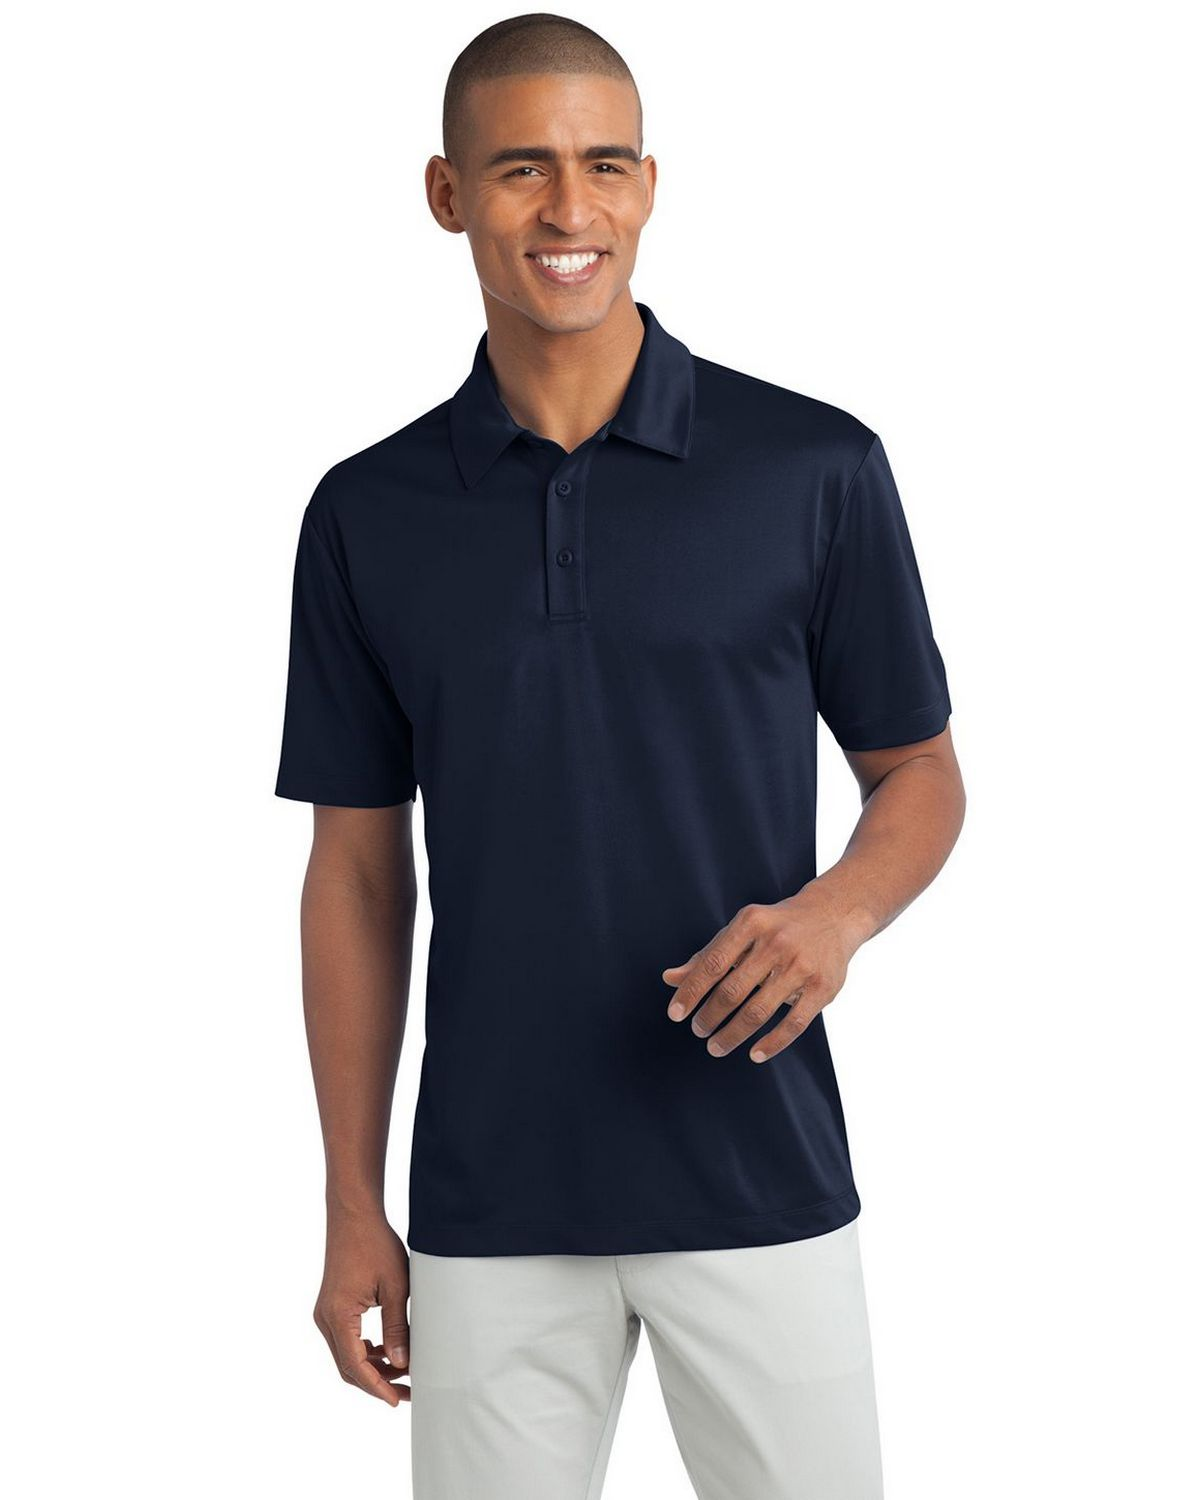 Port Authority K540 Men's Silk Touch Performance Polo - Navy - XS #silk